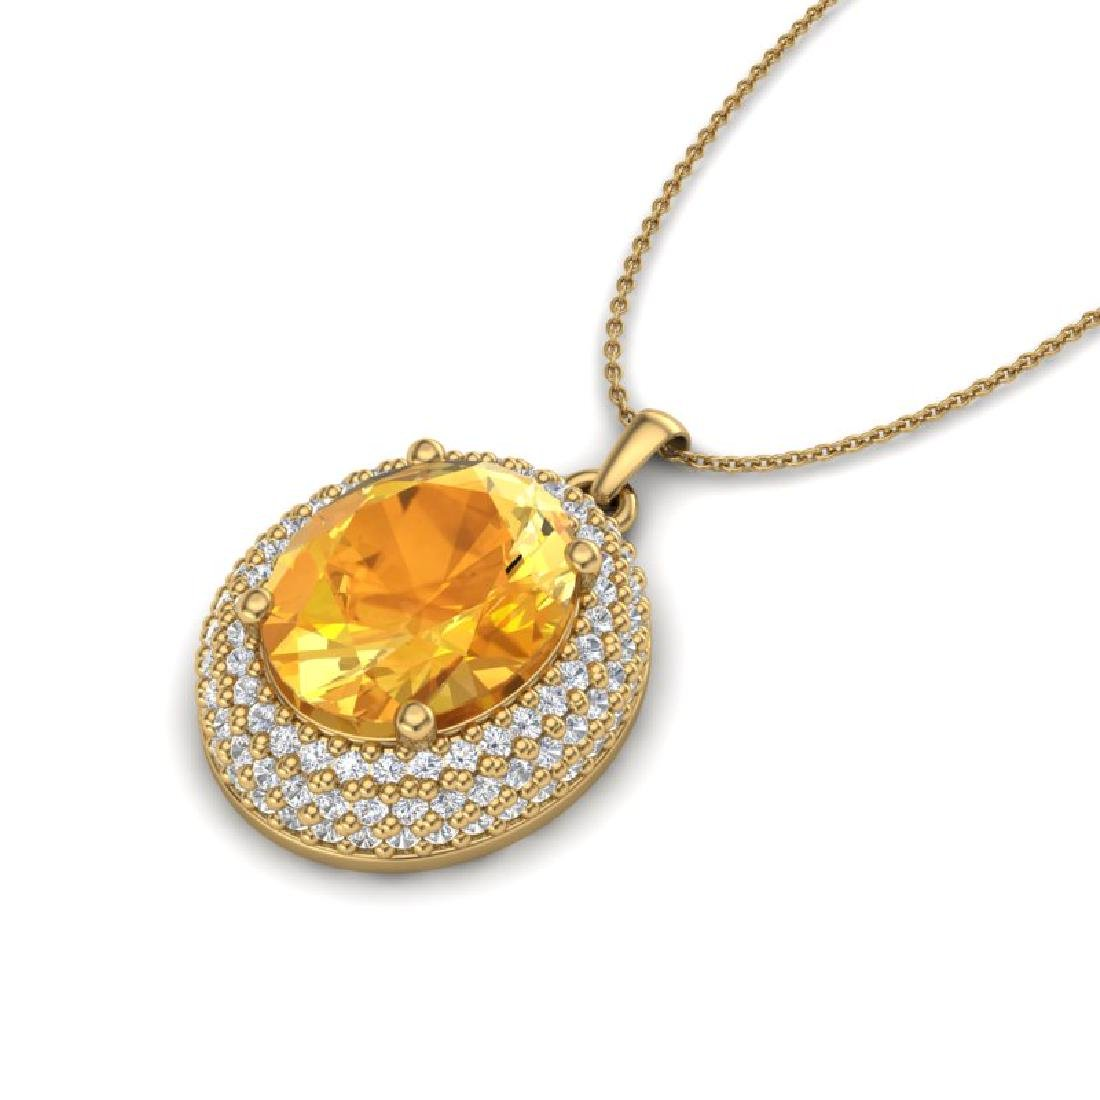 4 CTW Citrine & Micro Pave VS/SI Diamond Necklace 18K - 2